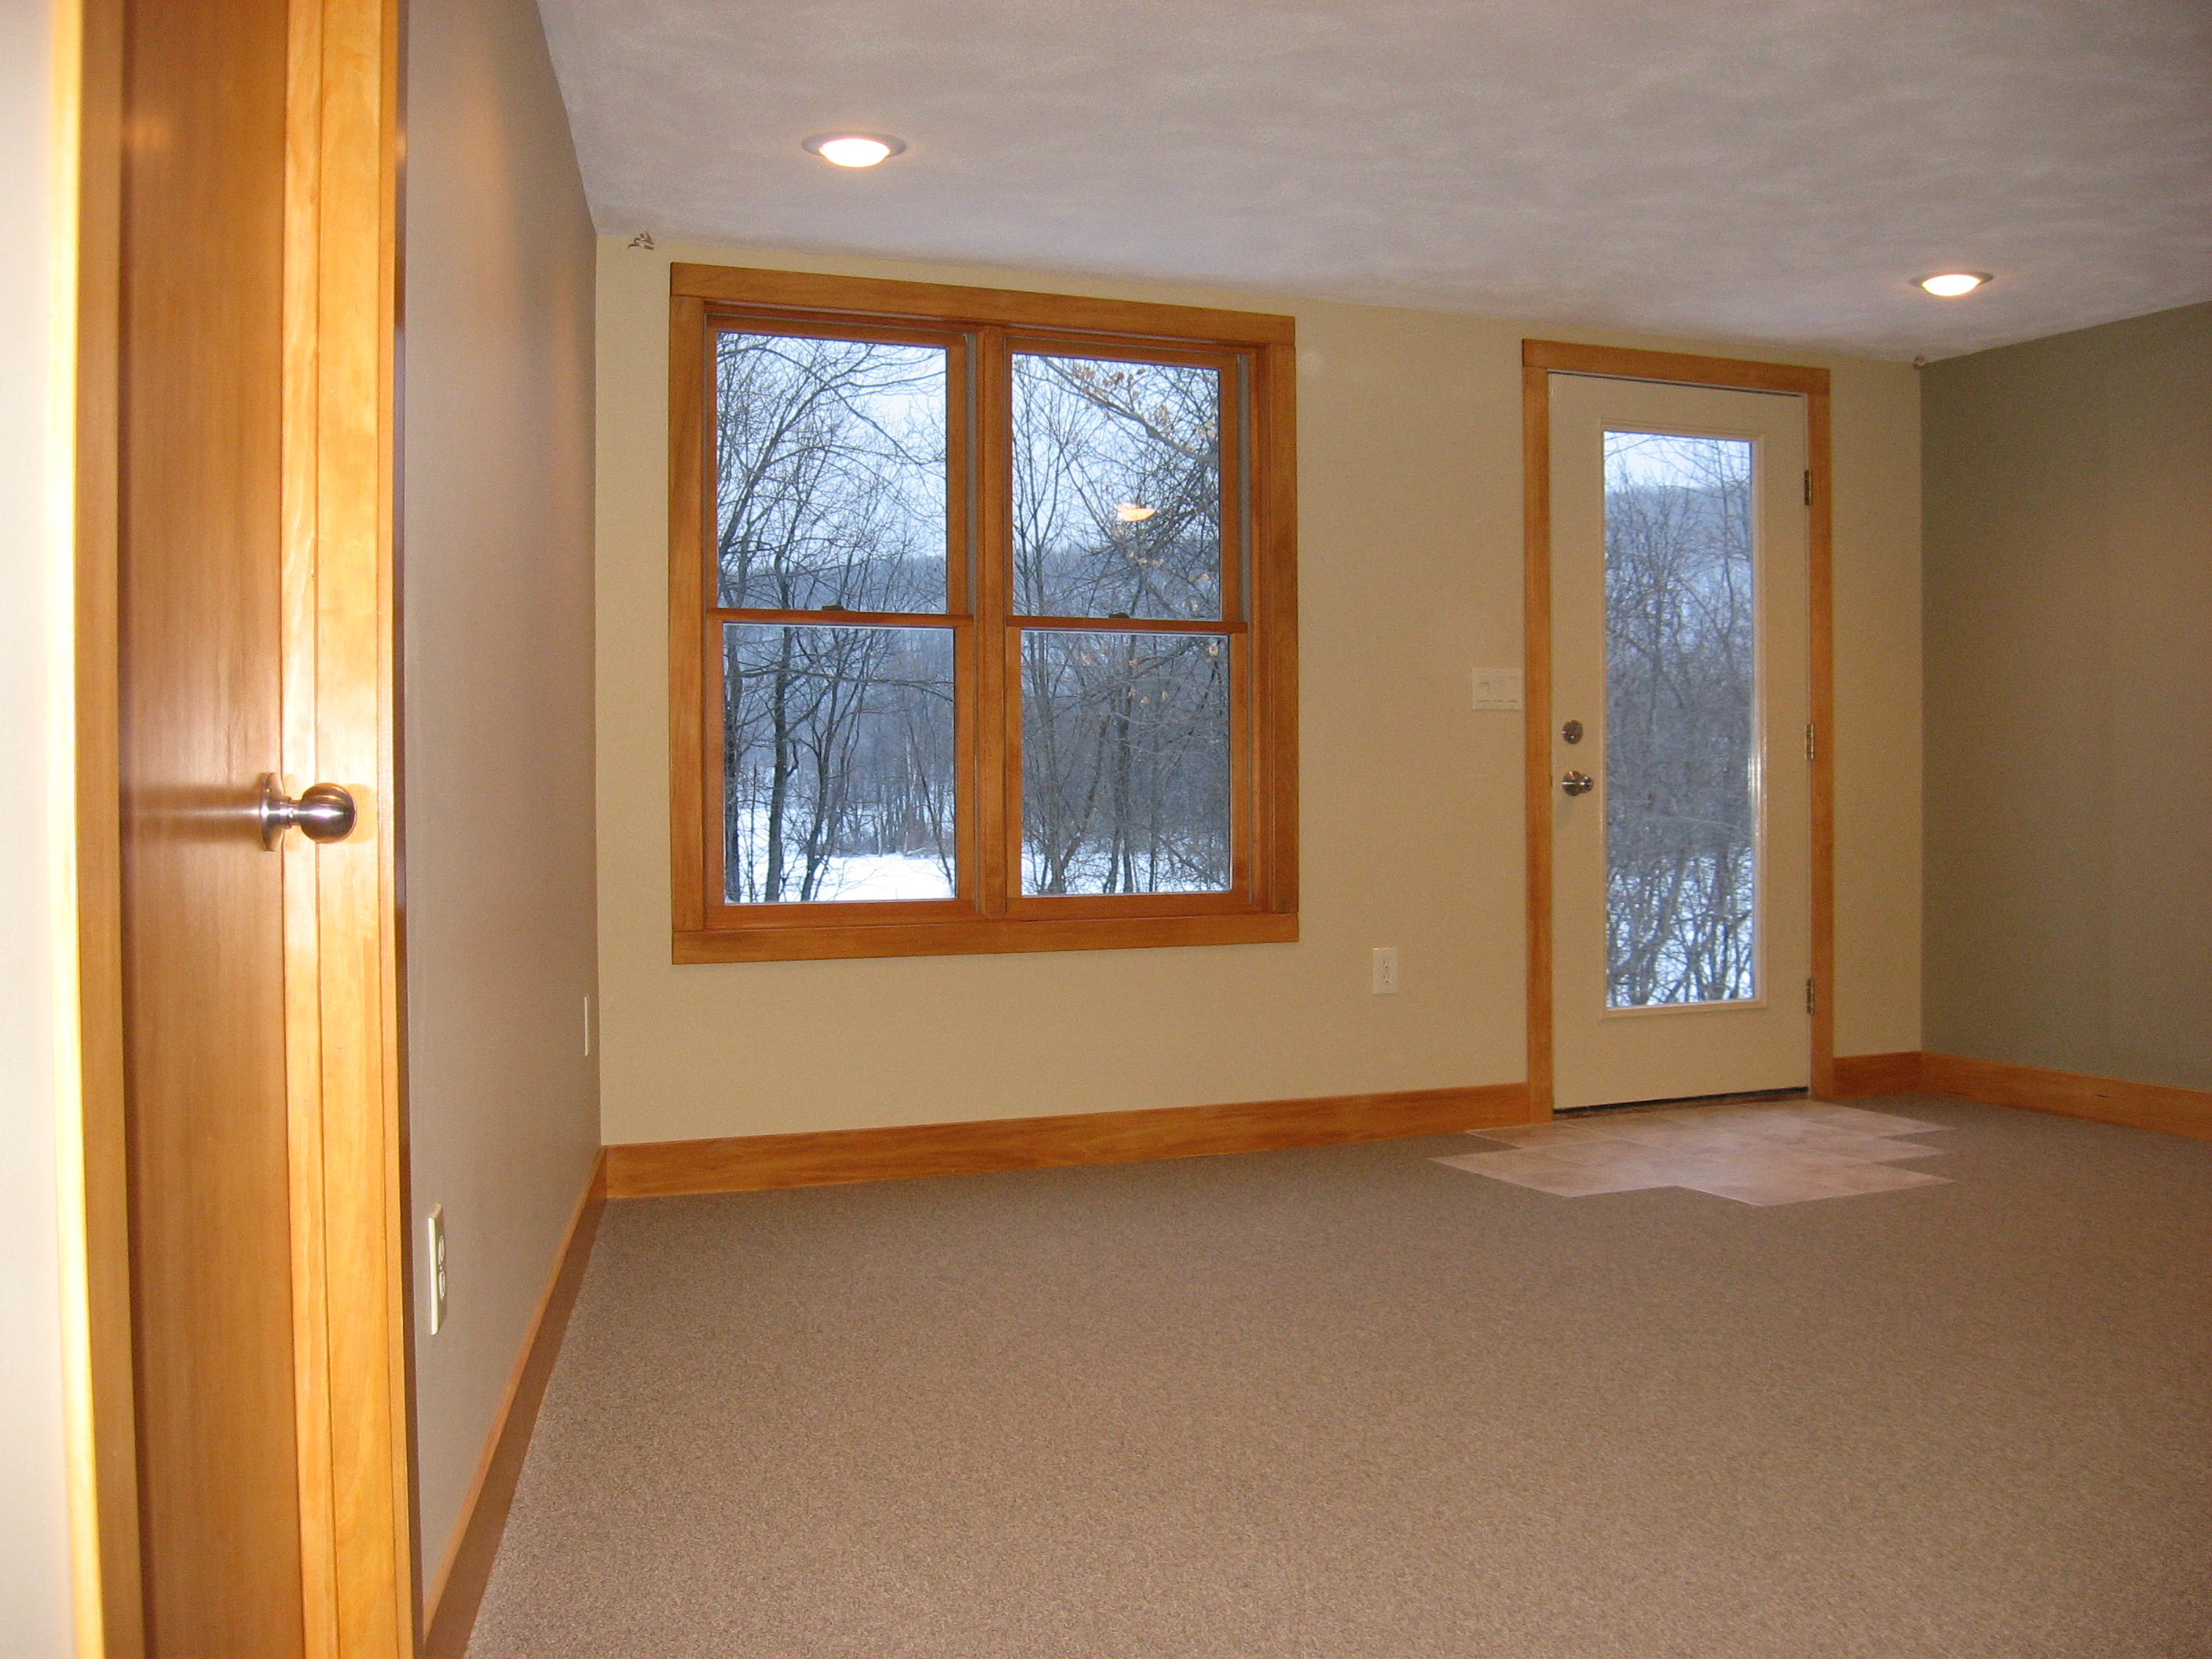 Finished basement renovation with stained birch doors, poplar baseboard and casing, recessed lights, and staggered ceramic tile at full-lite entry door